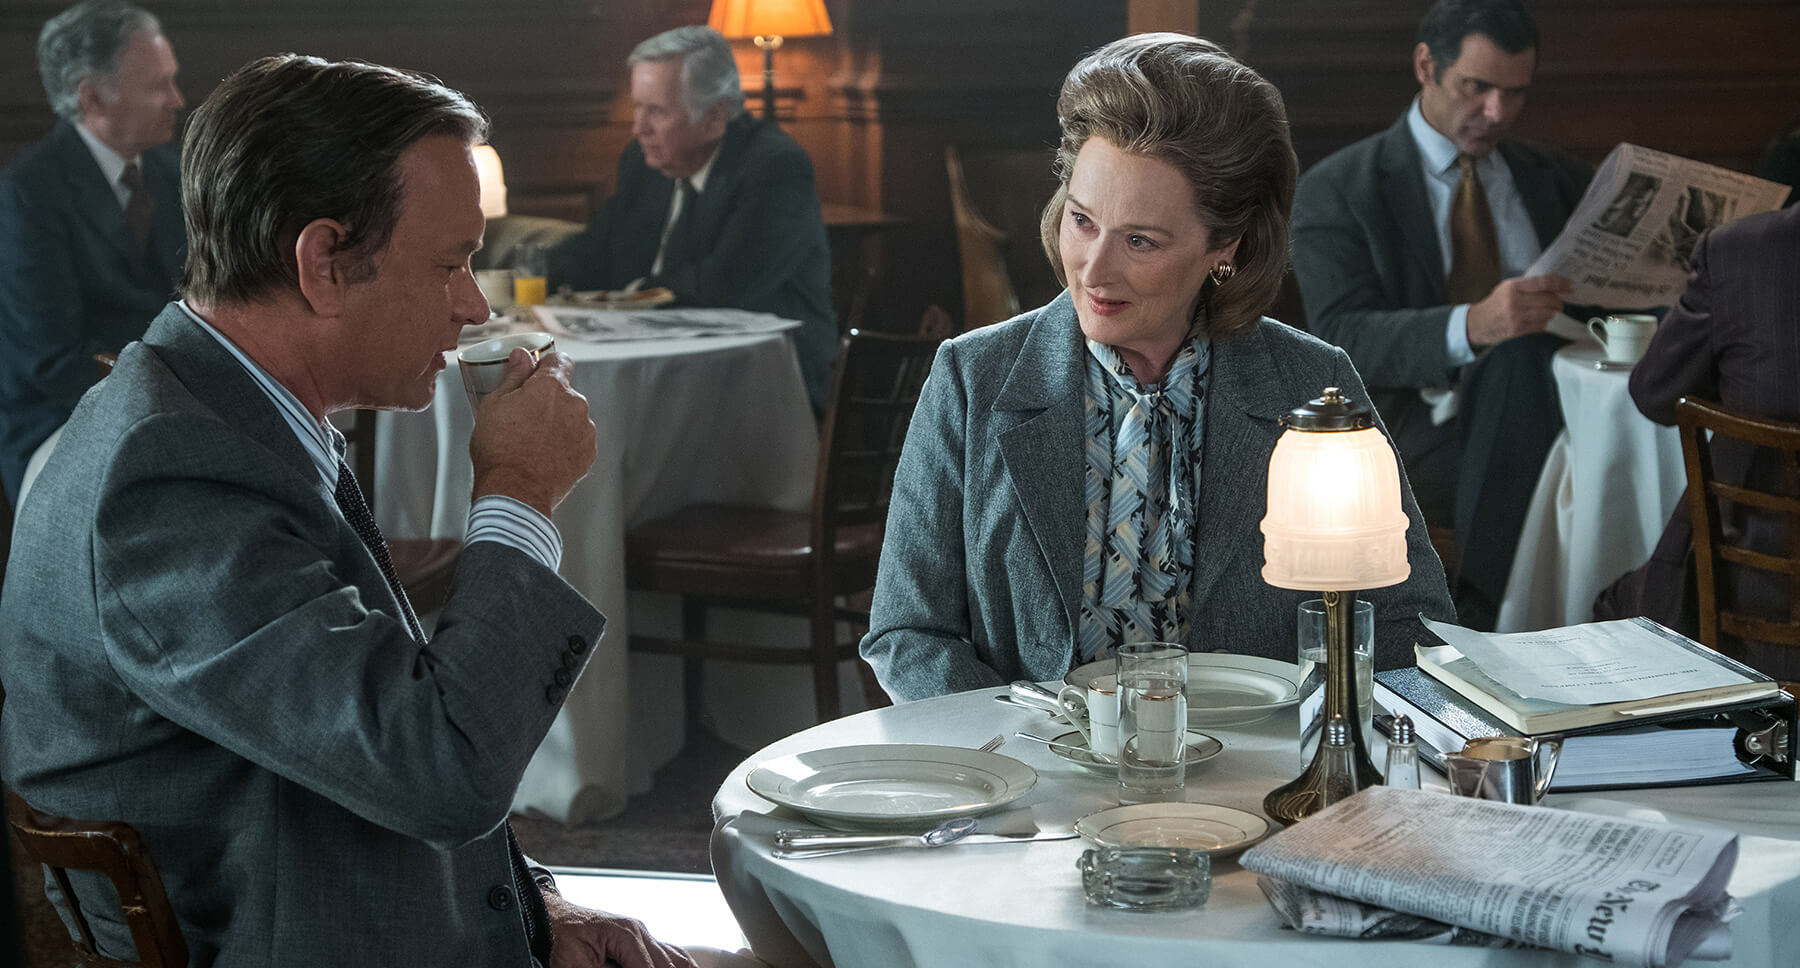 Tom Hanks and Meryl Streep dining in Steven Spielberg's The Post